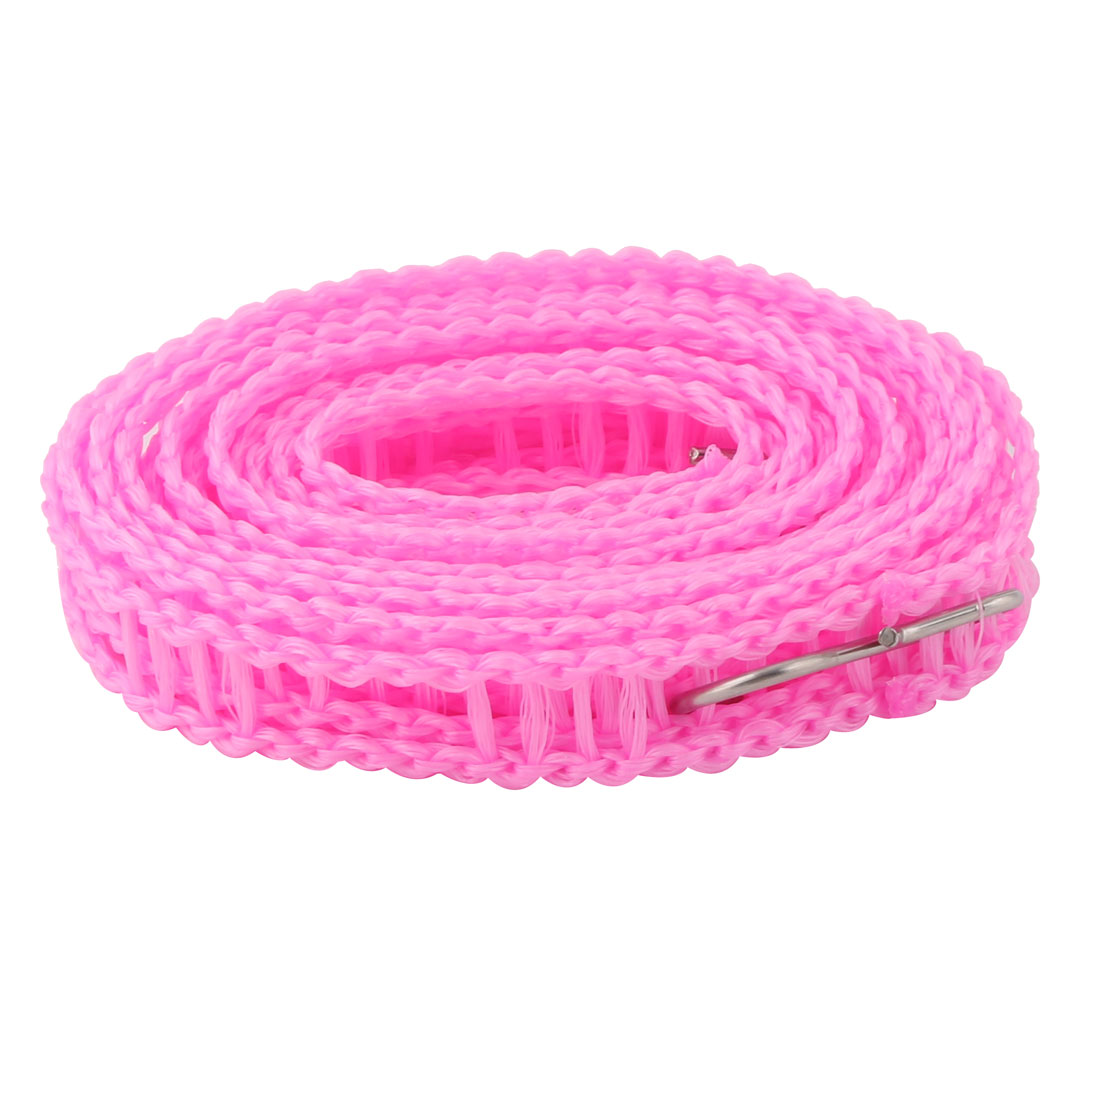 Household Outdoor Nylon Antiskid Windproof Clothesline Clothes Rope Washing Line Pink